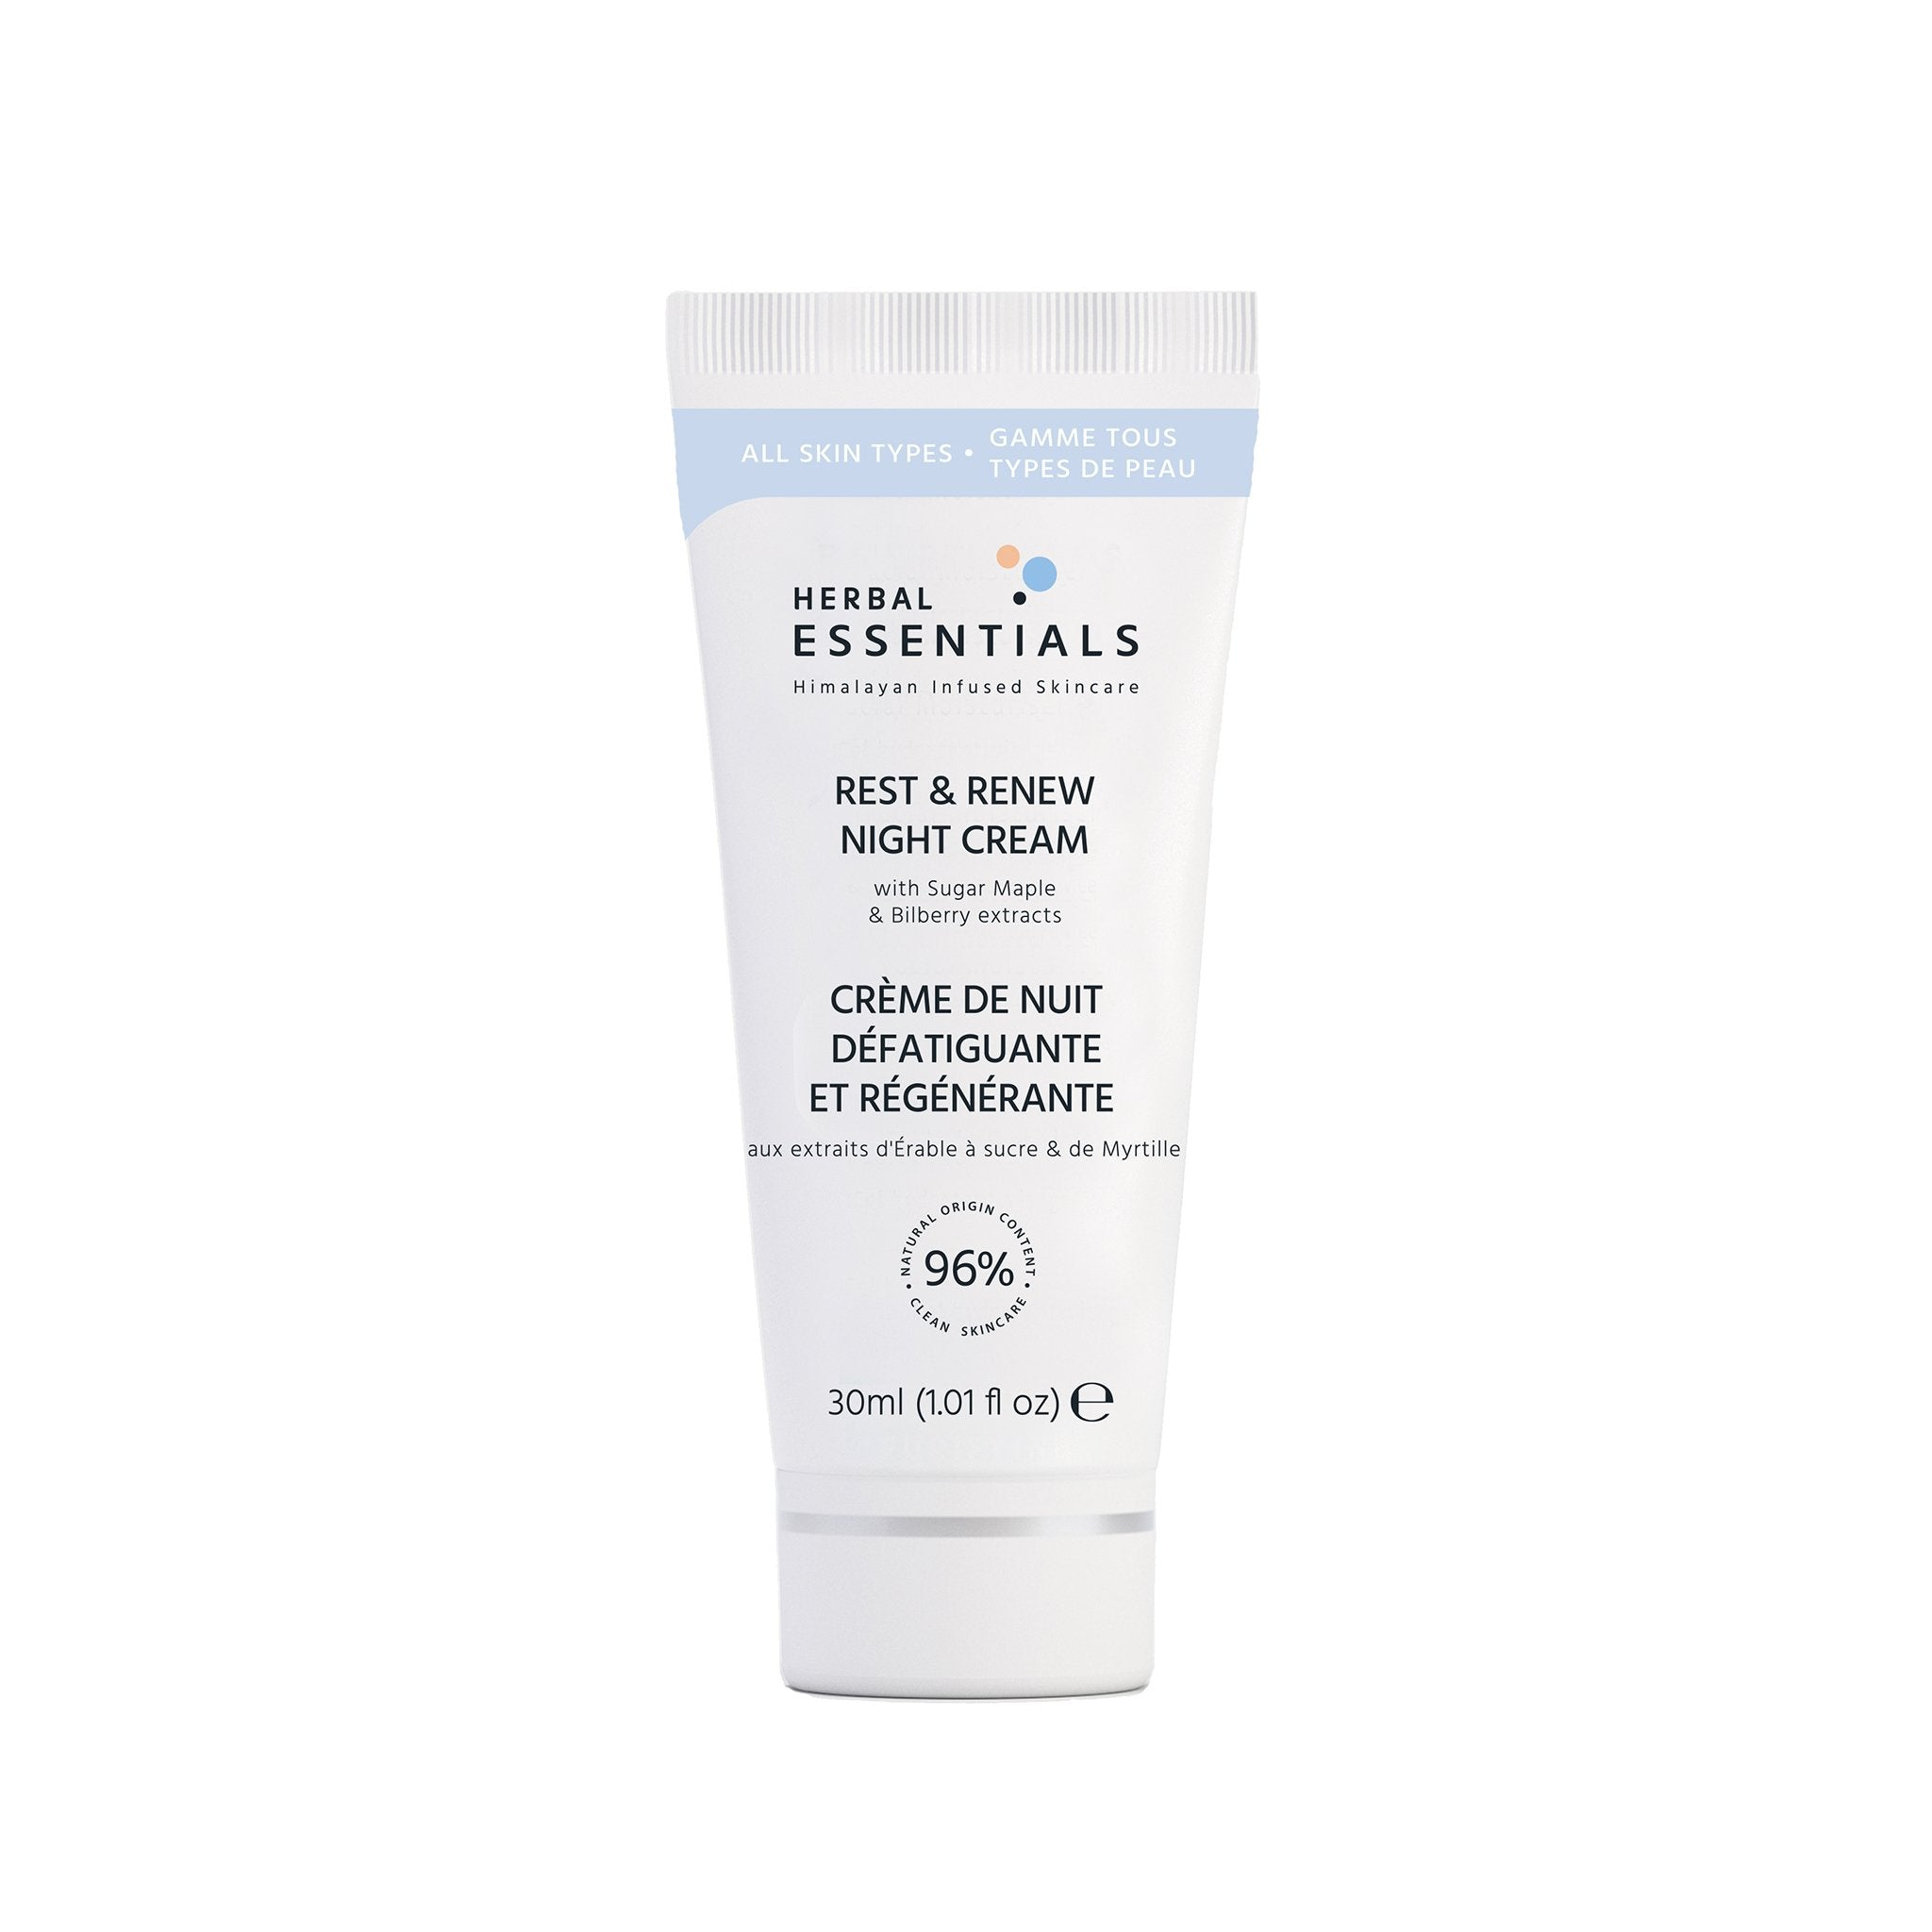 Herbal Essentials Rest & Renew Night Cream with Sugar Maple & Bilberry extracts 30ml